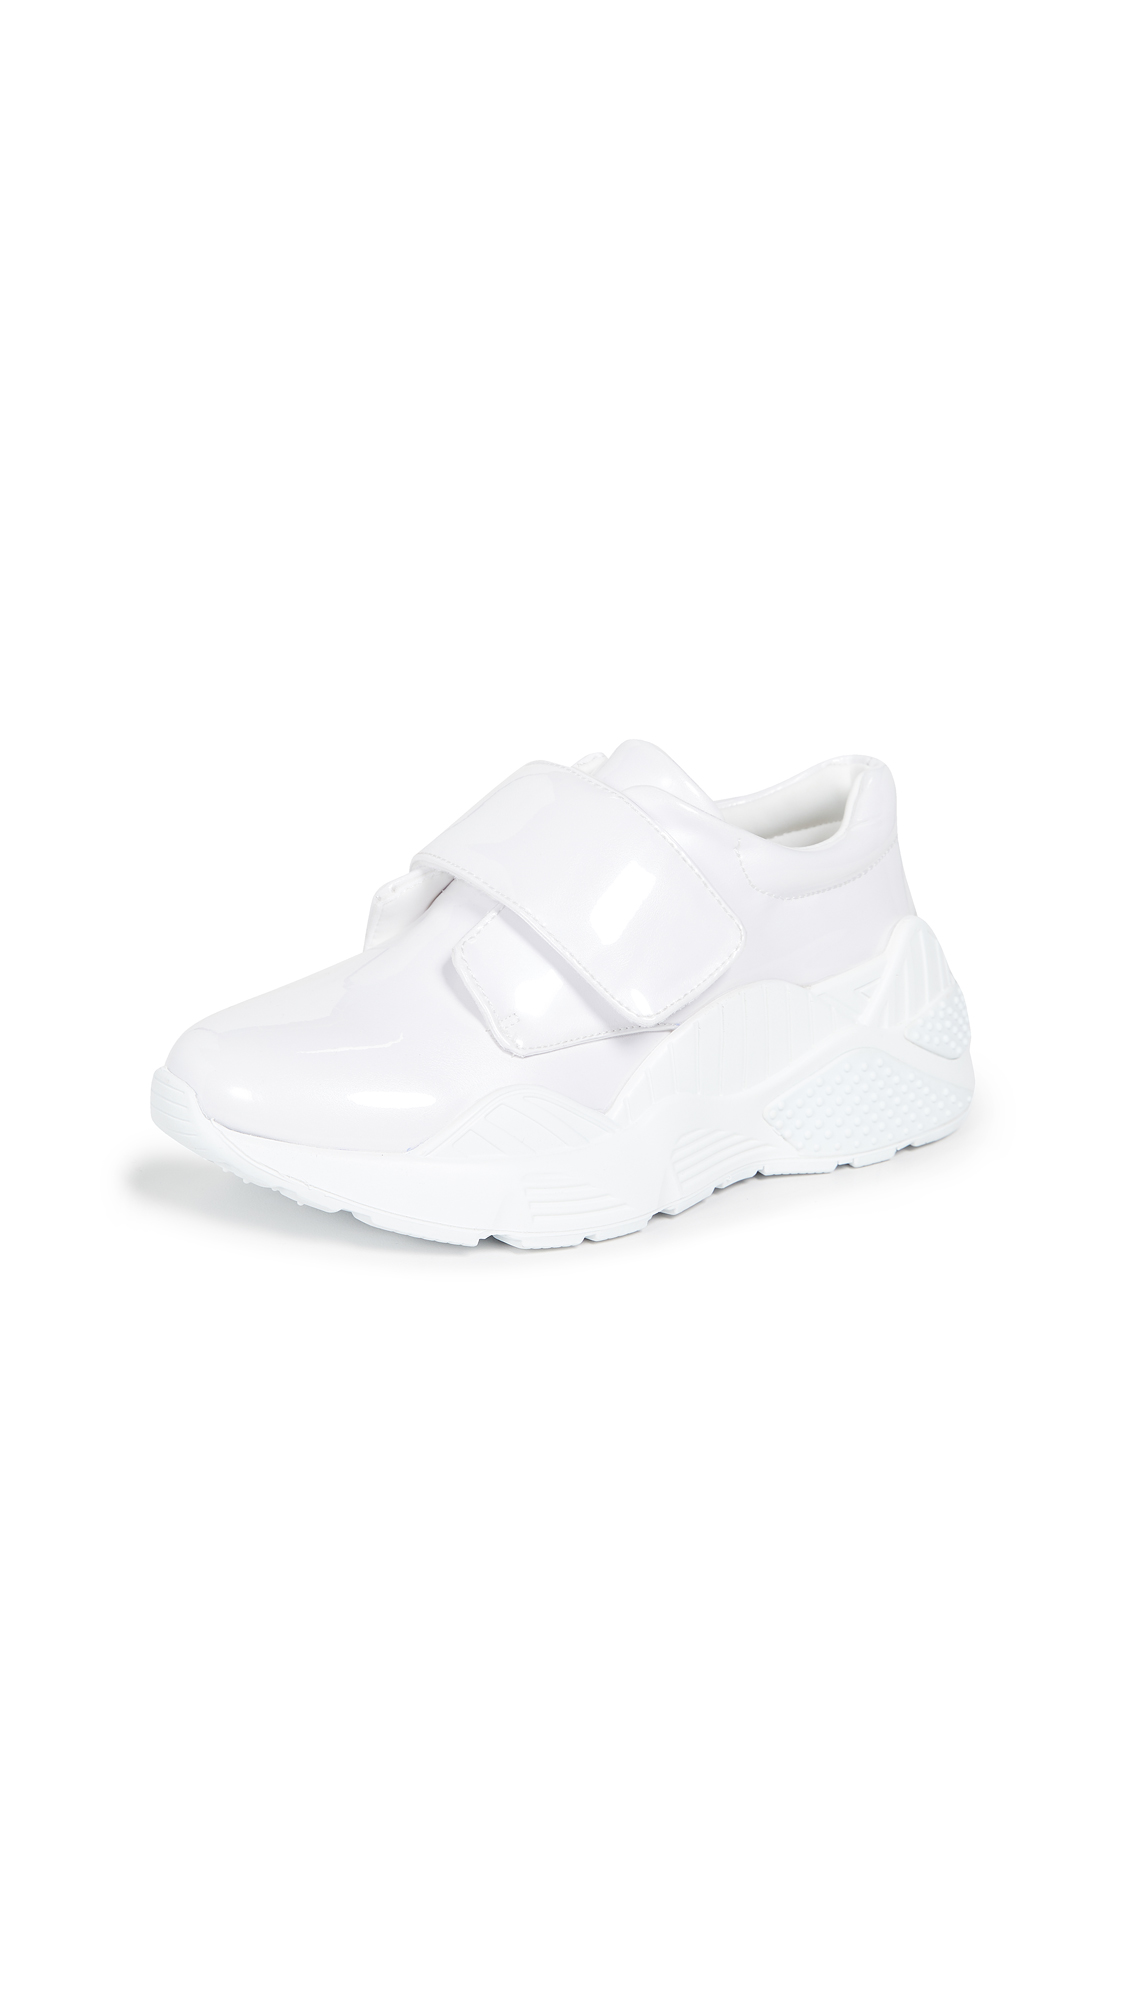 Jeffrey Campbell Blade Runner Sneakers - White/Clear